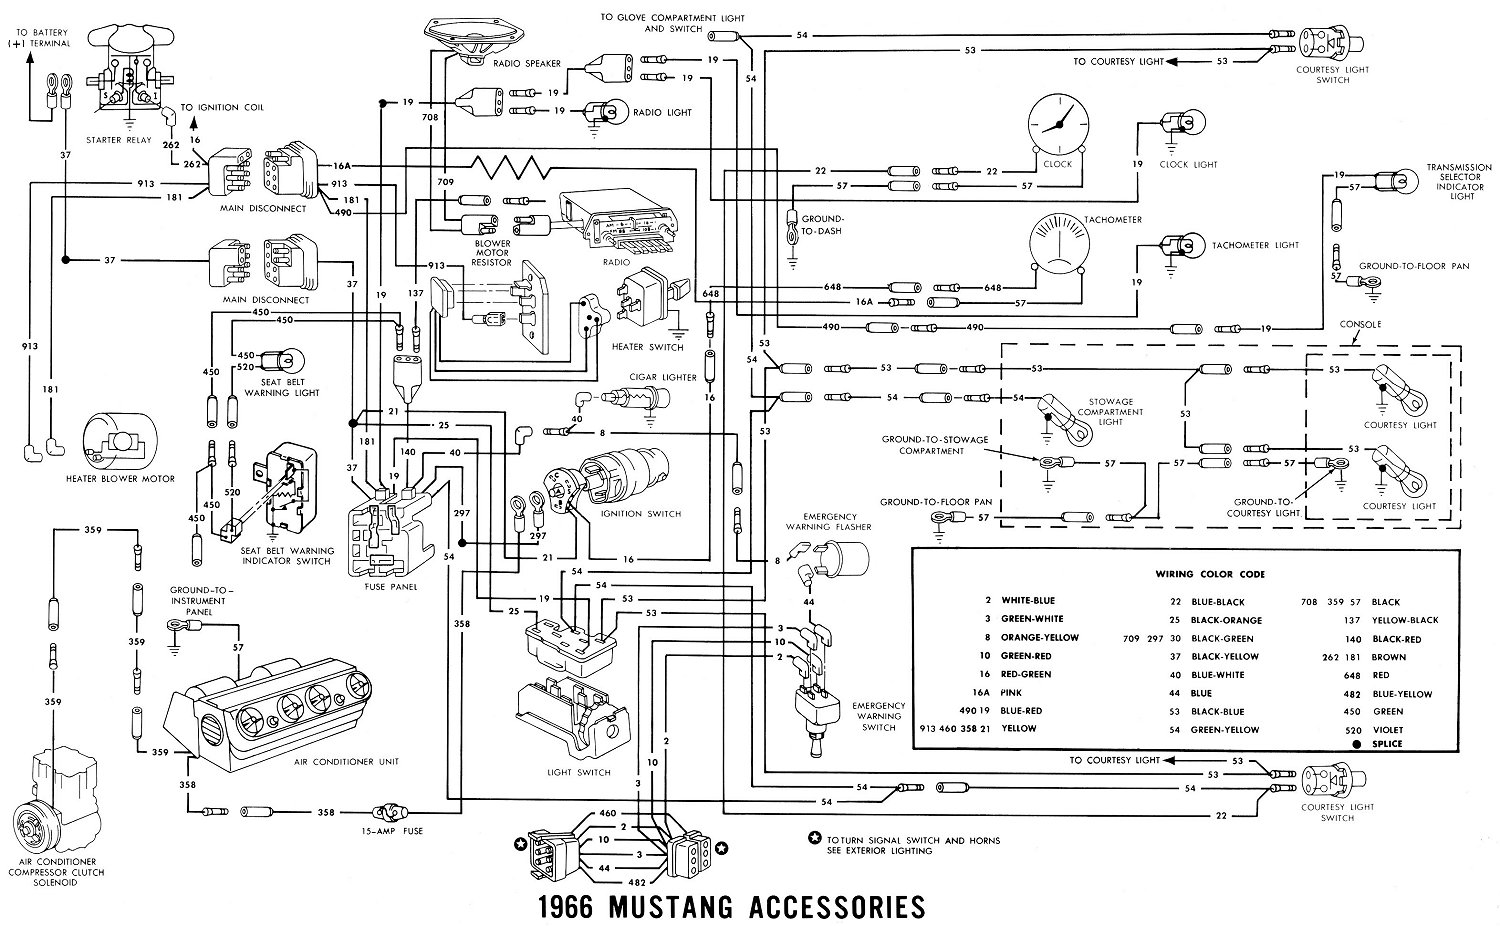 66 mustang ignition wiring diagram narva driving lights lelu 39s 1966 diagrams